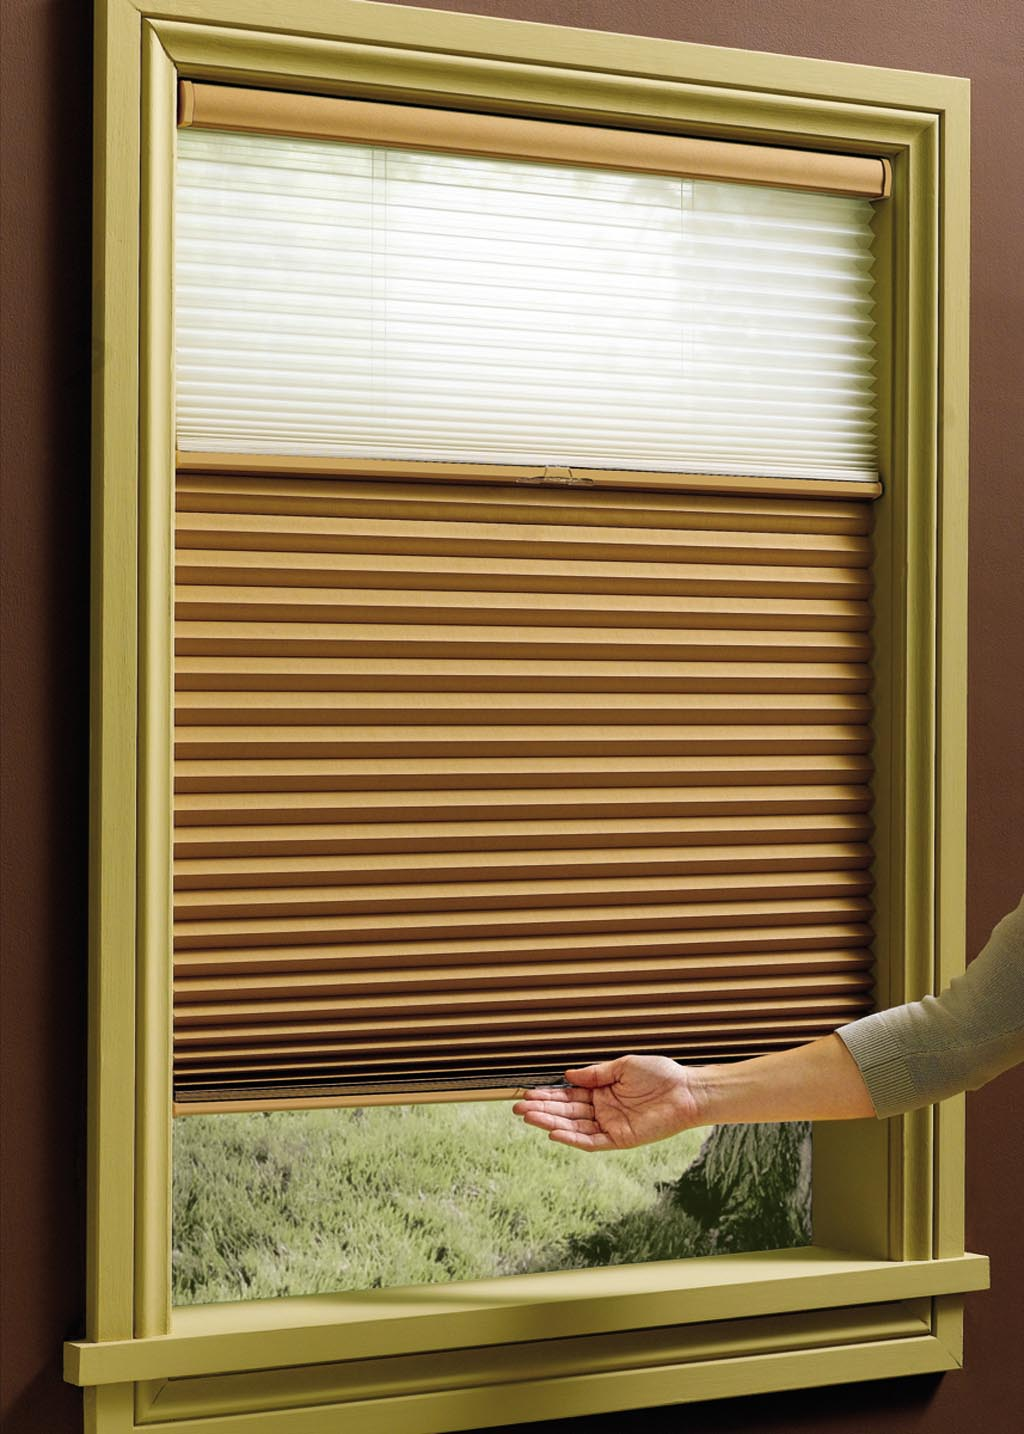 How Do Cordless Window Blinds Work